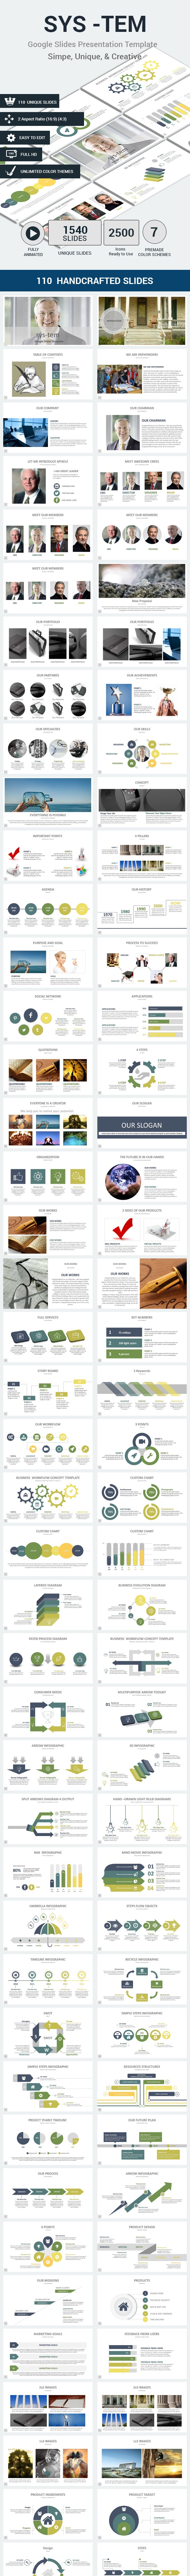 sys-tem Google Slides Presentation Template - Google Slides Presentation Templates